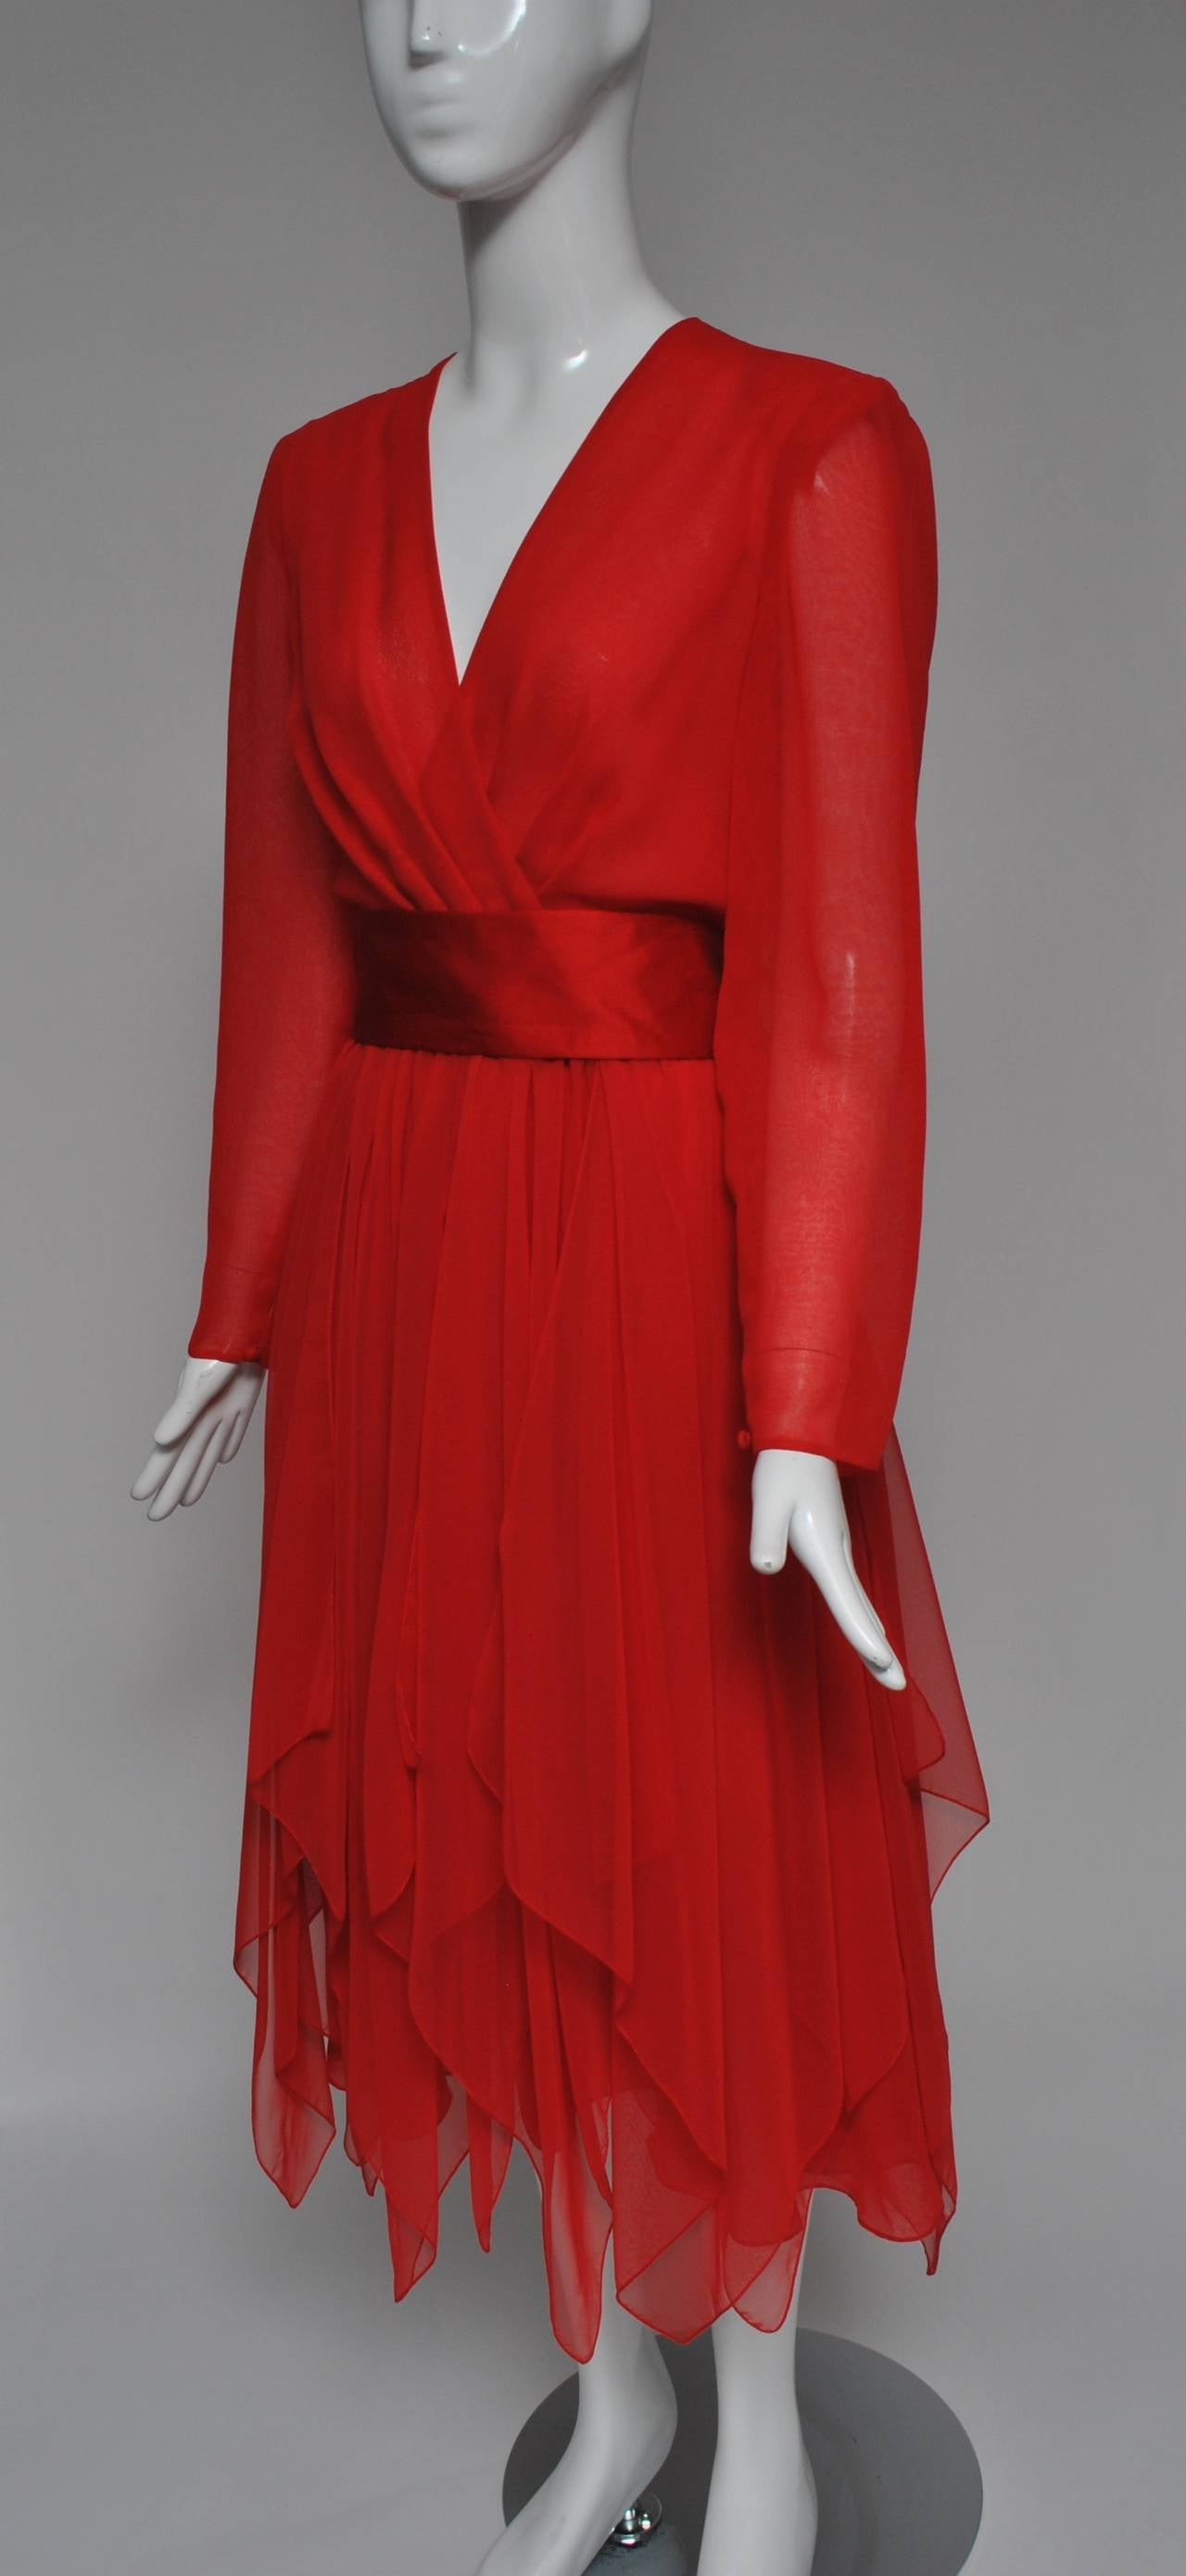 Late 1970s red cocktail dress in polyester chiffon by Estevez features a surplice top and handkerchief-paneled skirt. The long sheer sleeves button at the wrist. A wide red satin sash wraps around the waist and ties in back with long streamers.